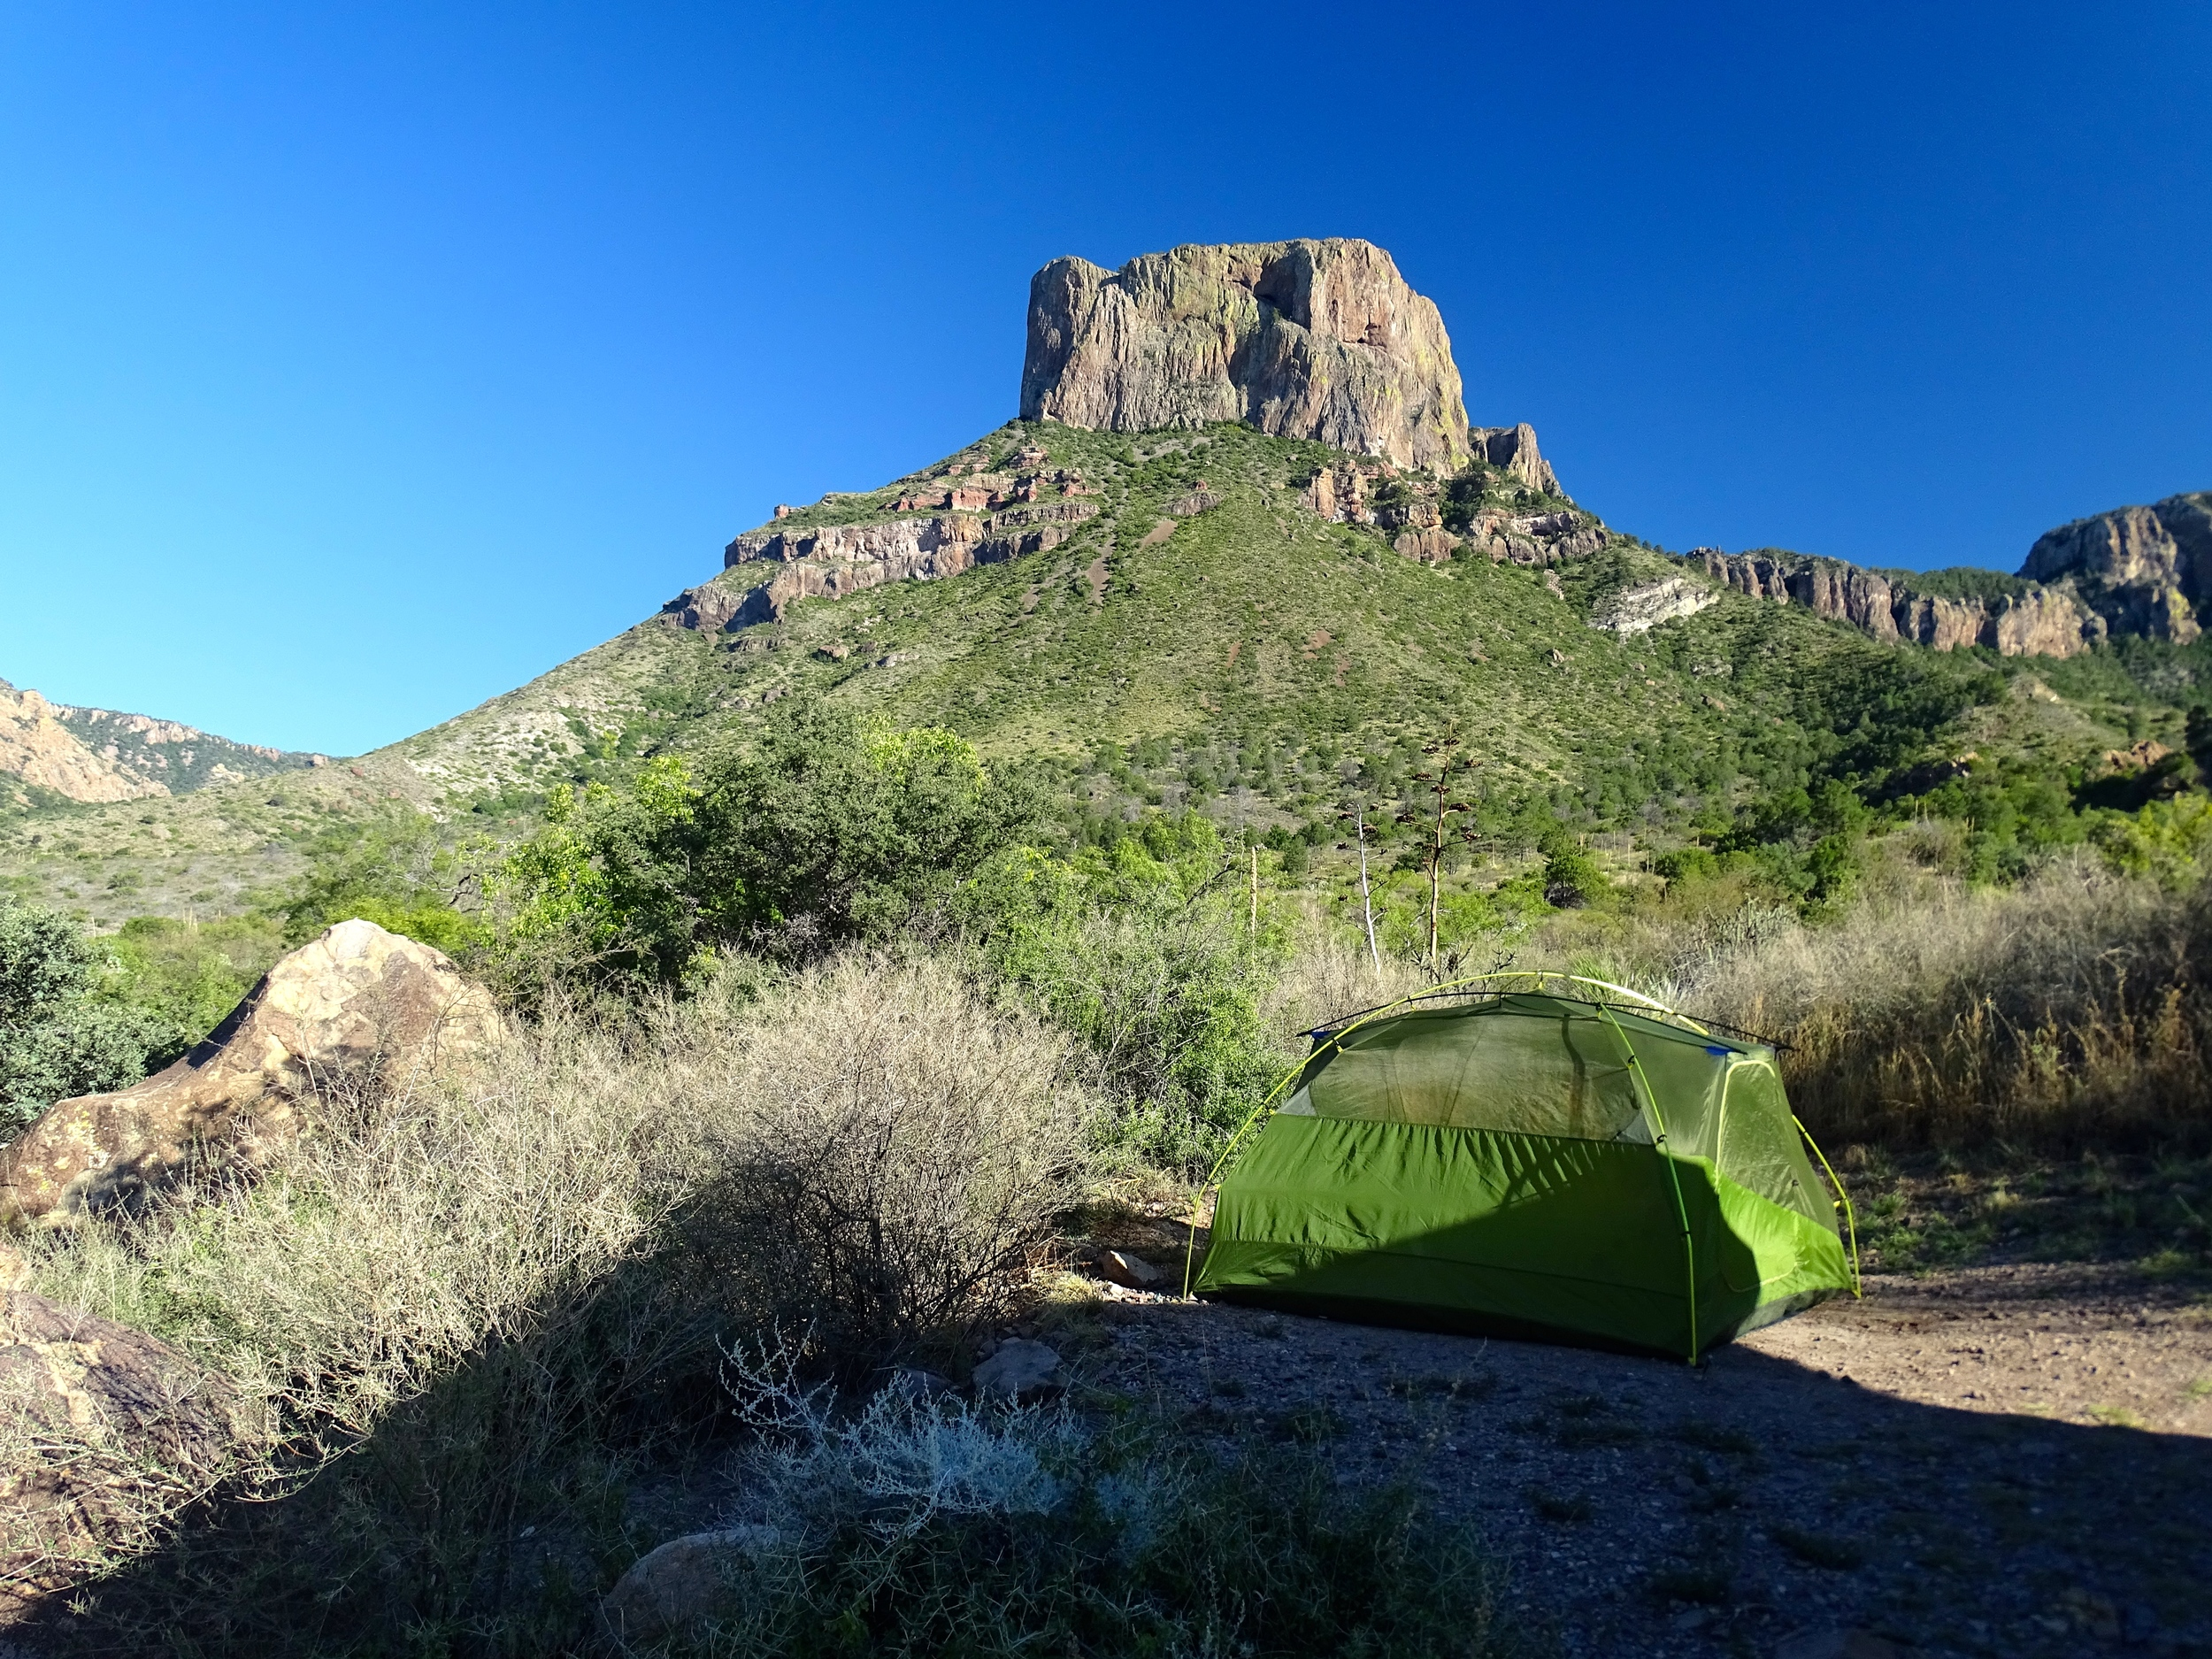 The view from our camp spot continually amazed me.